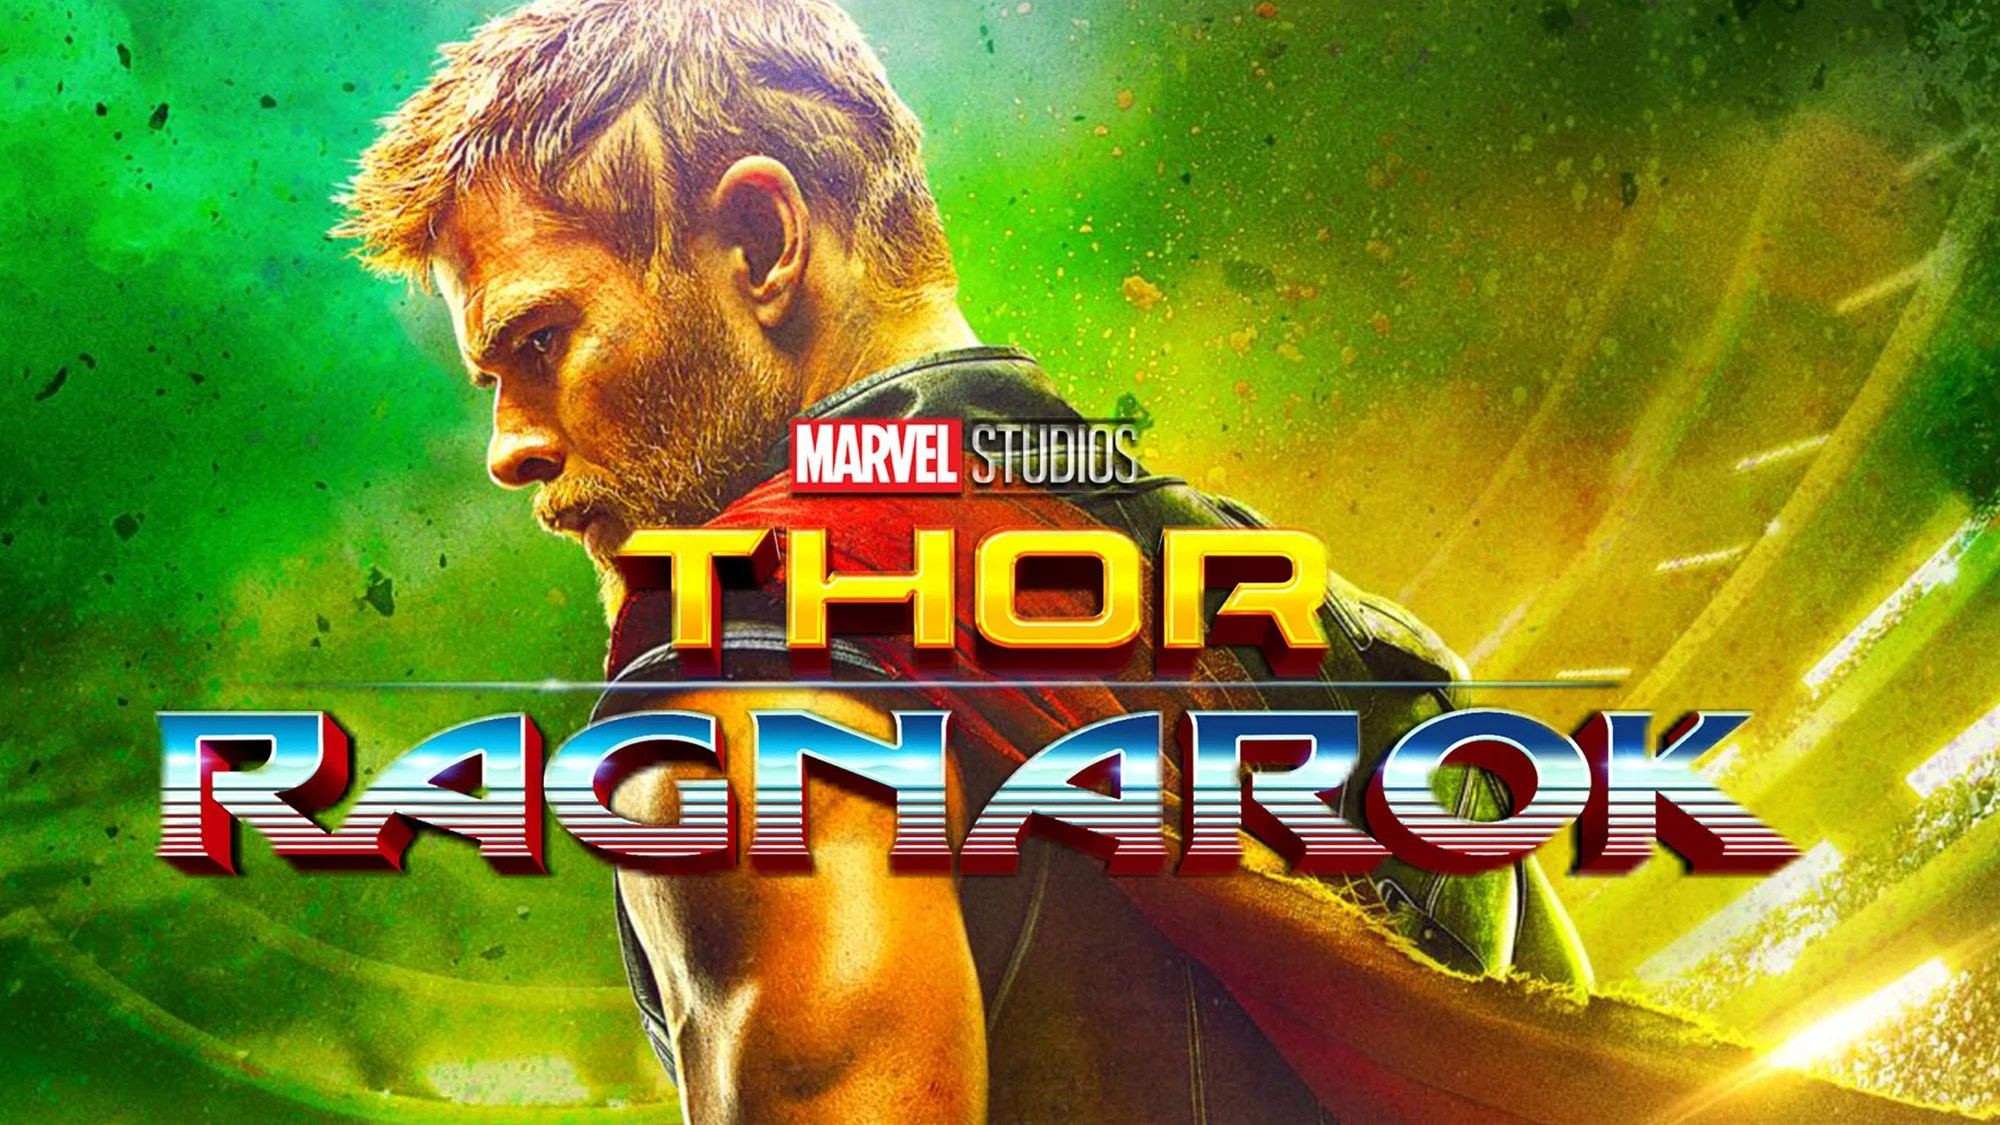 Best Free Wallpaper App For Iphone X Thor Ragnarok Release Date Trailers Cast Plot And